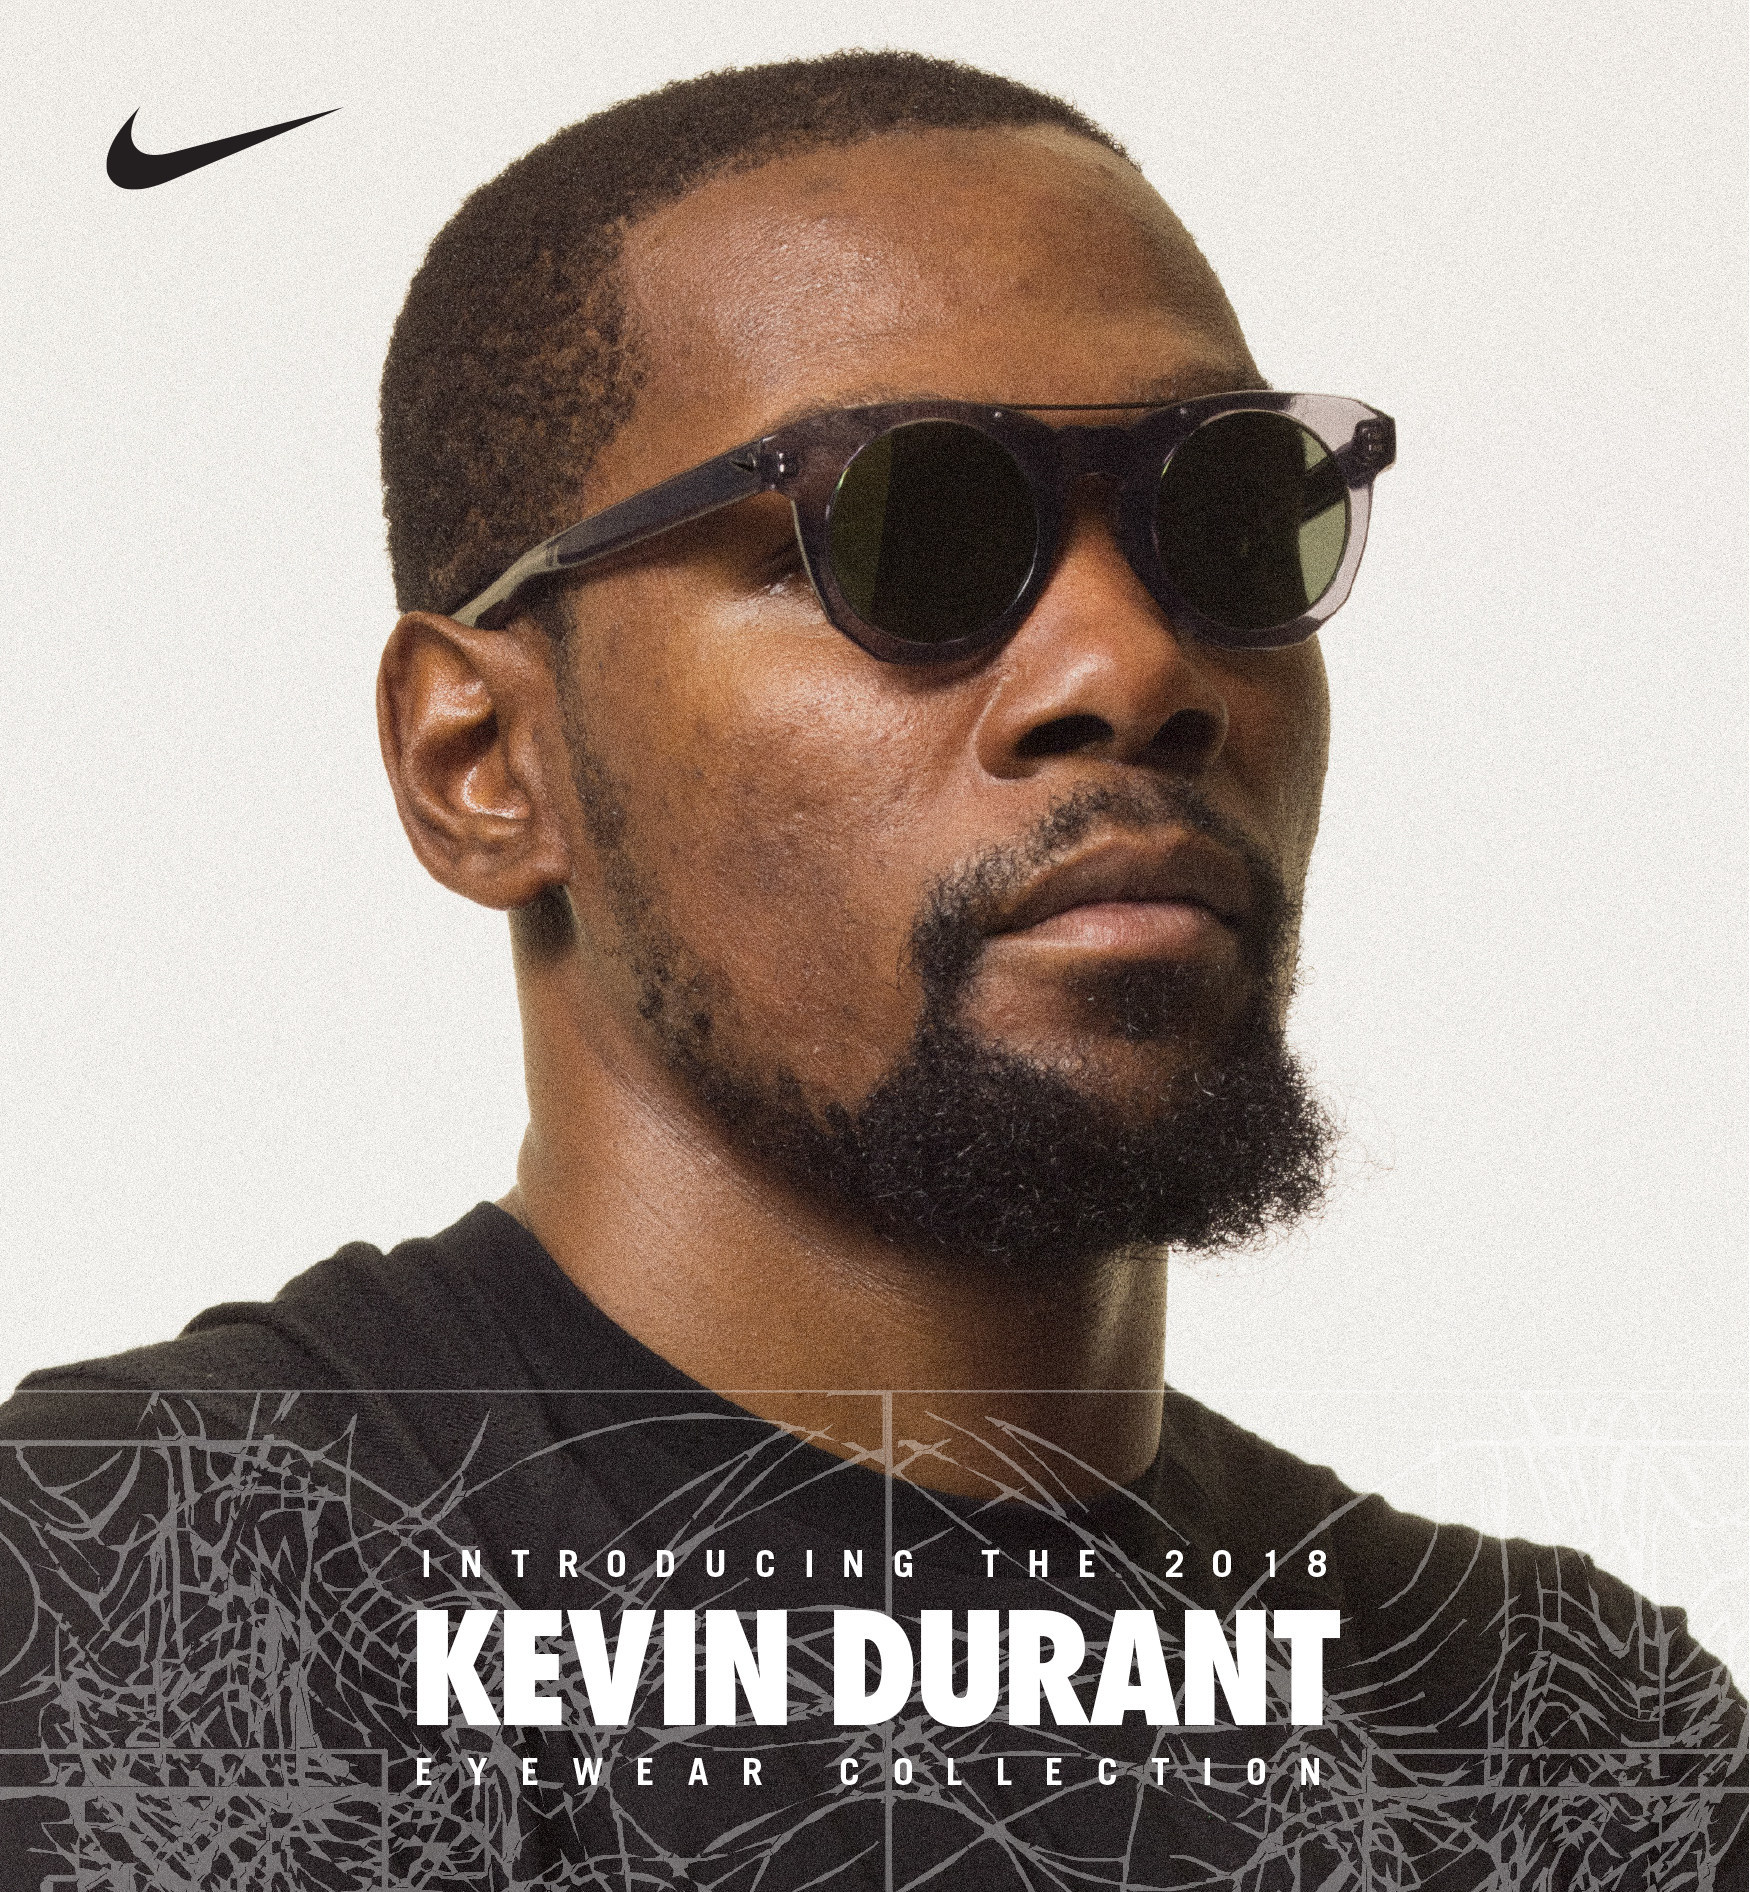 a555fa5654db NIKE VISION PARTNERS WITH KEVIN DURANT FOR 2018 KD EYEWEAR COLLECTION.  FIRST-EVER SUNGLASSES AND NEW OPTICAL STYLES TO DEBUT FOR FALL 2018